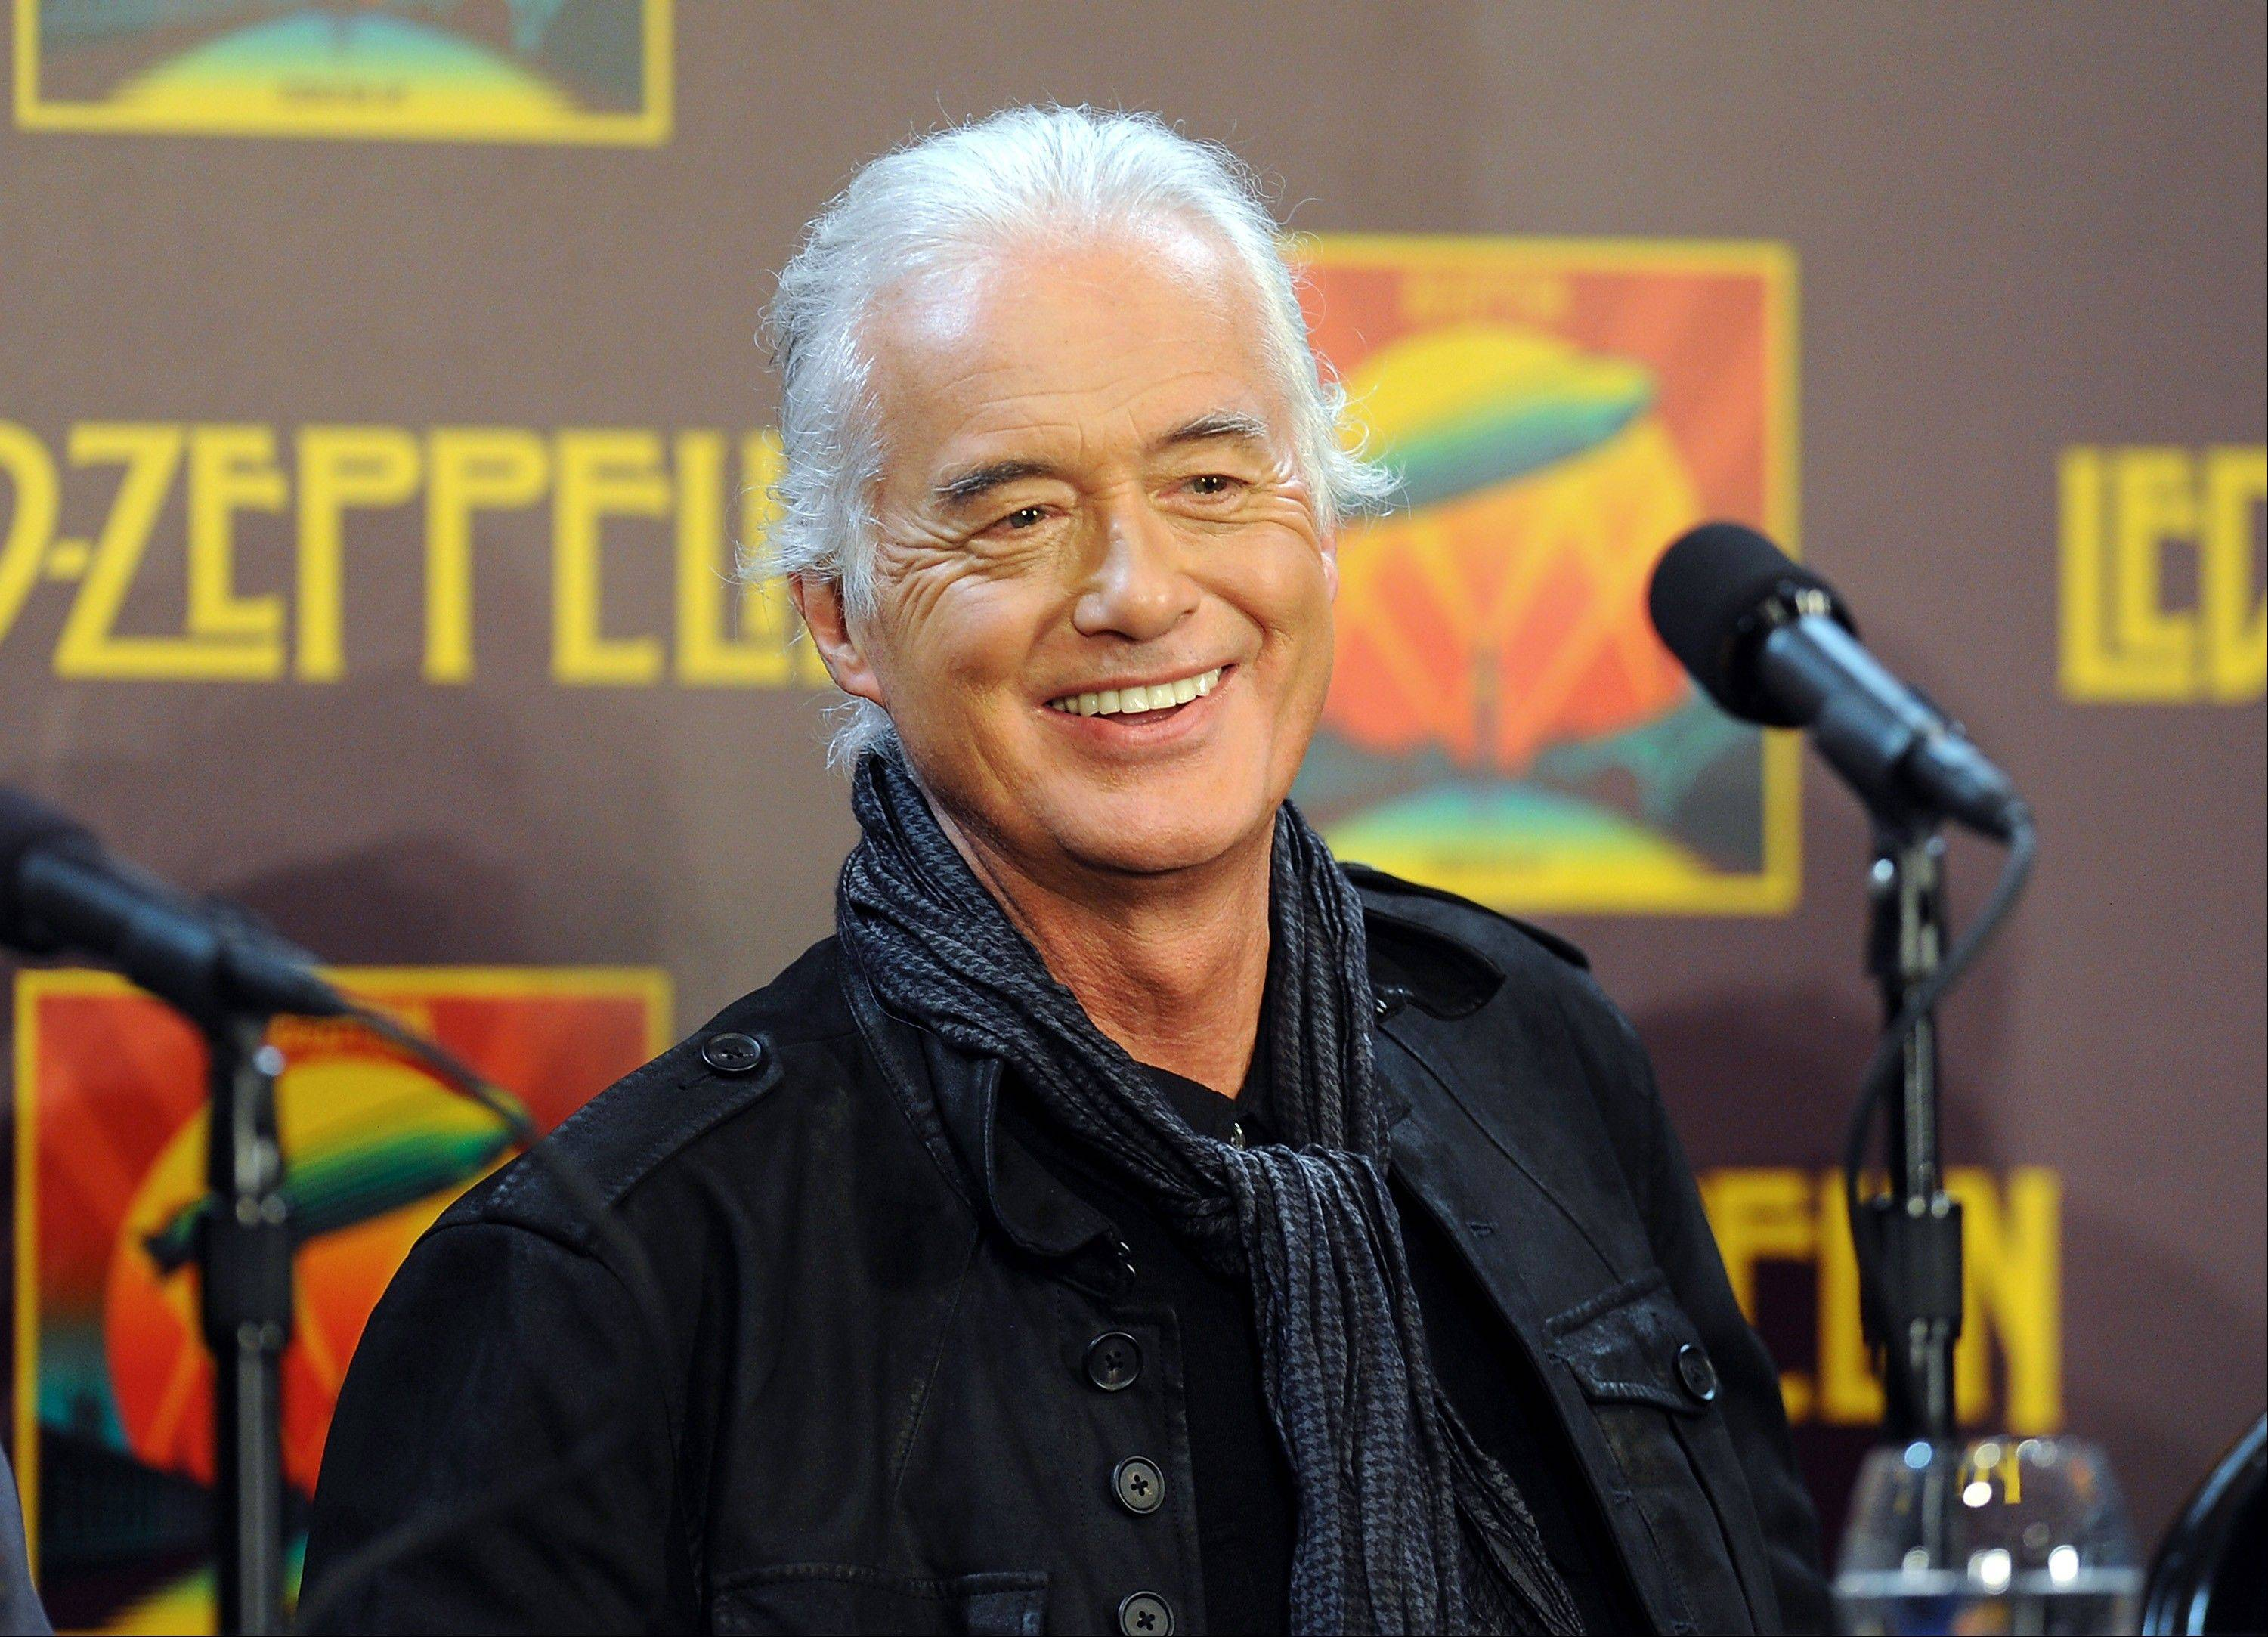 "Led Zeppelin Guitarist Jimmy Page participates in a press conference ahead of the worldwide theatrical release of ""Celebration Day"", a concert film of their 2007 London O2 arena reunion show, at the Museum of Modern Art on Tuesday, Oct. 9, 2012 in New York."